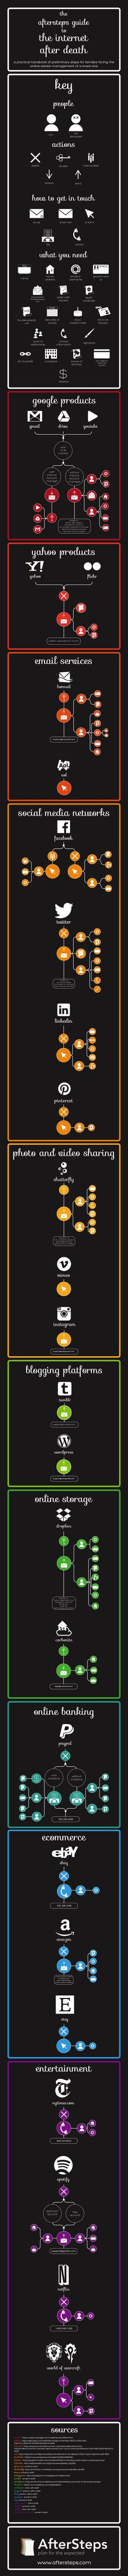 The aftersteps guide to the internet after death #infografia #infographic